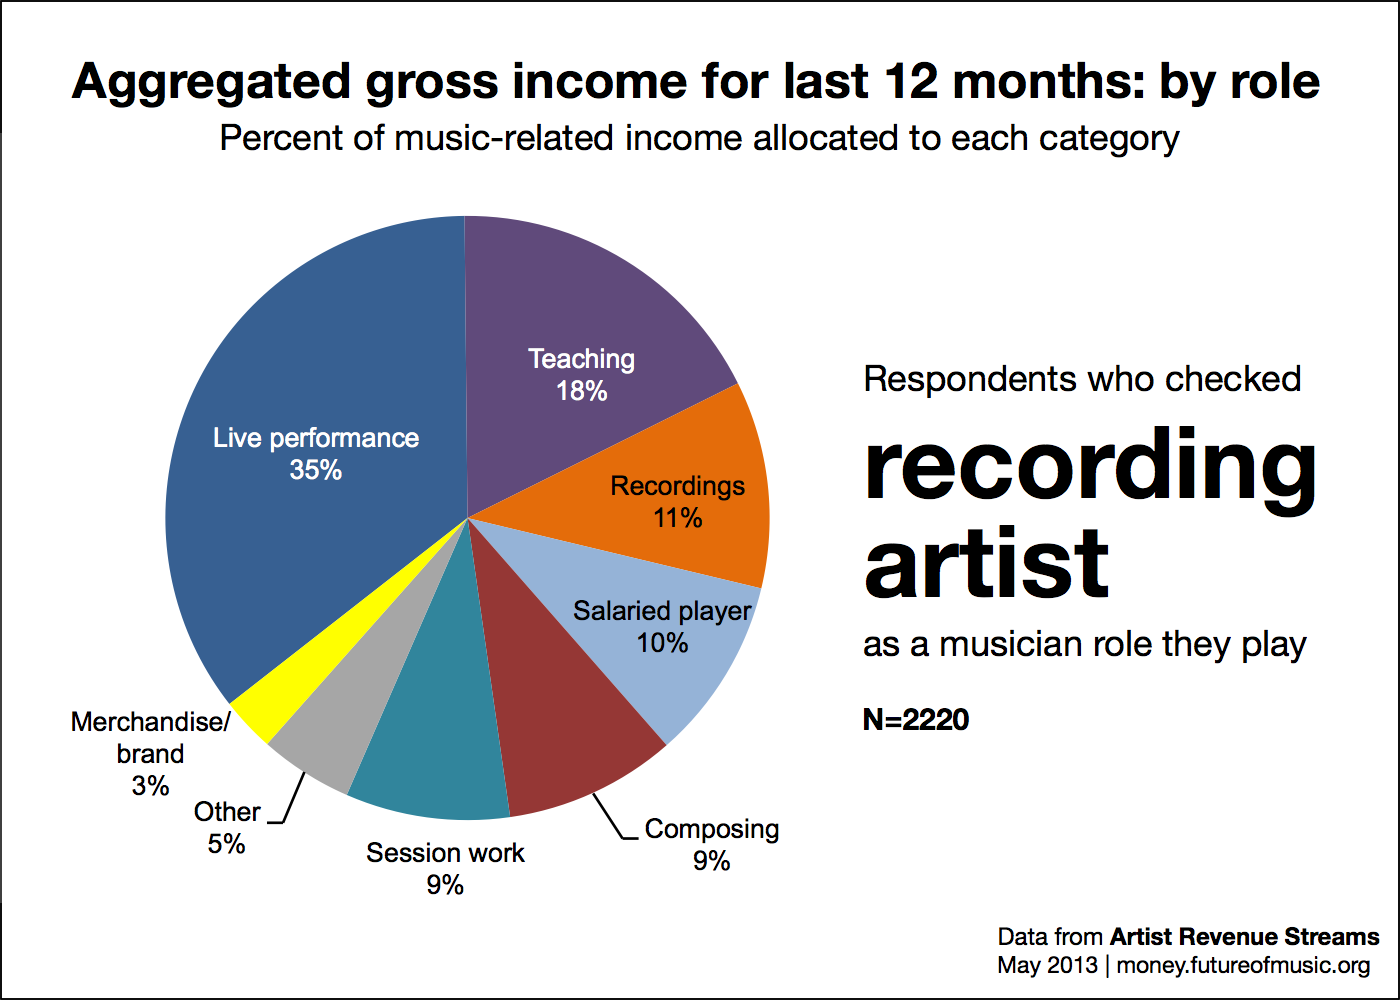 Revenue allocation for role recording artist